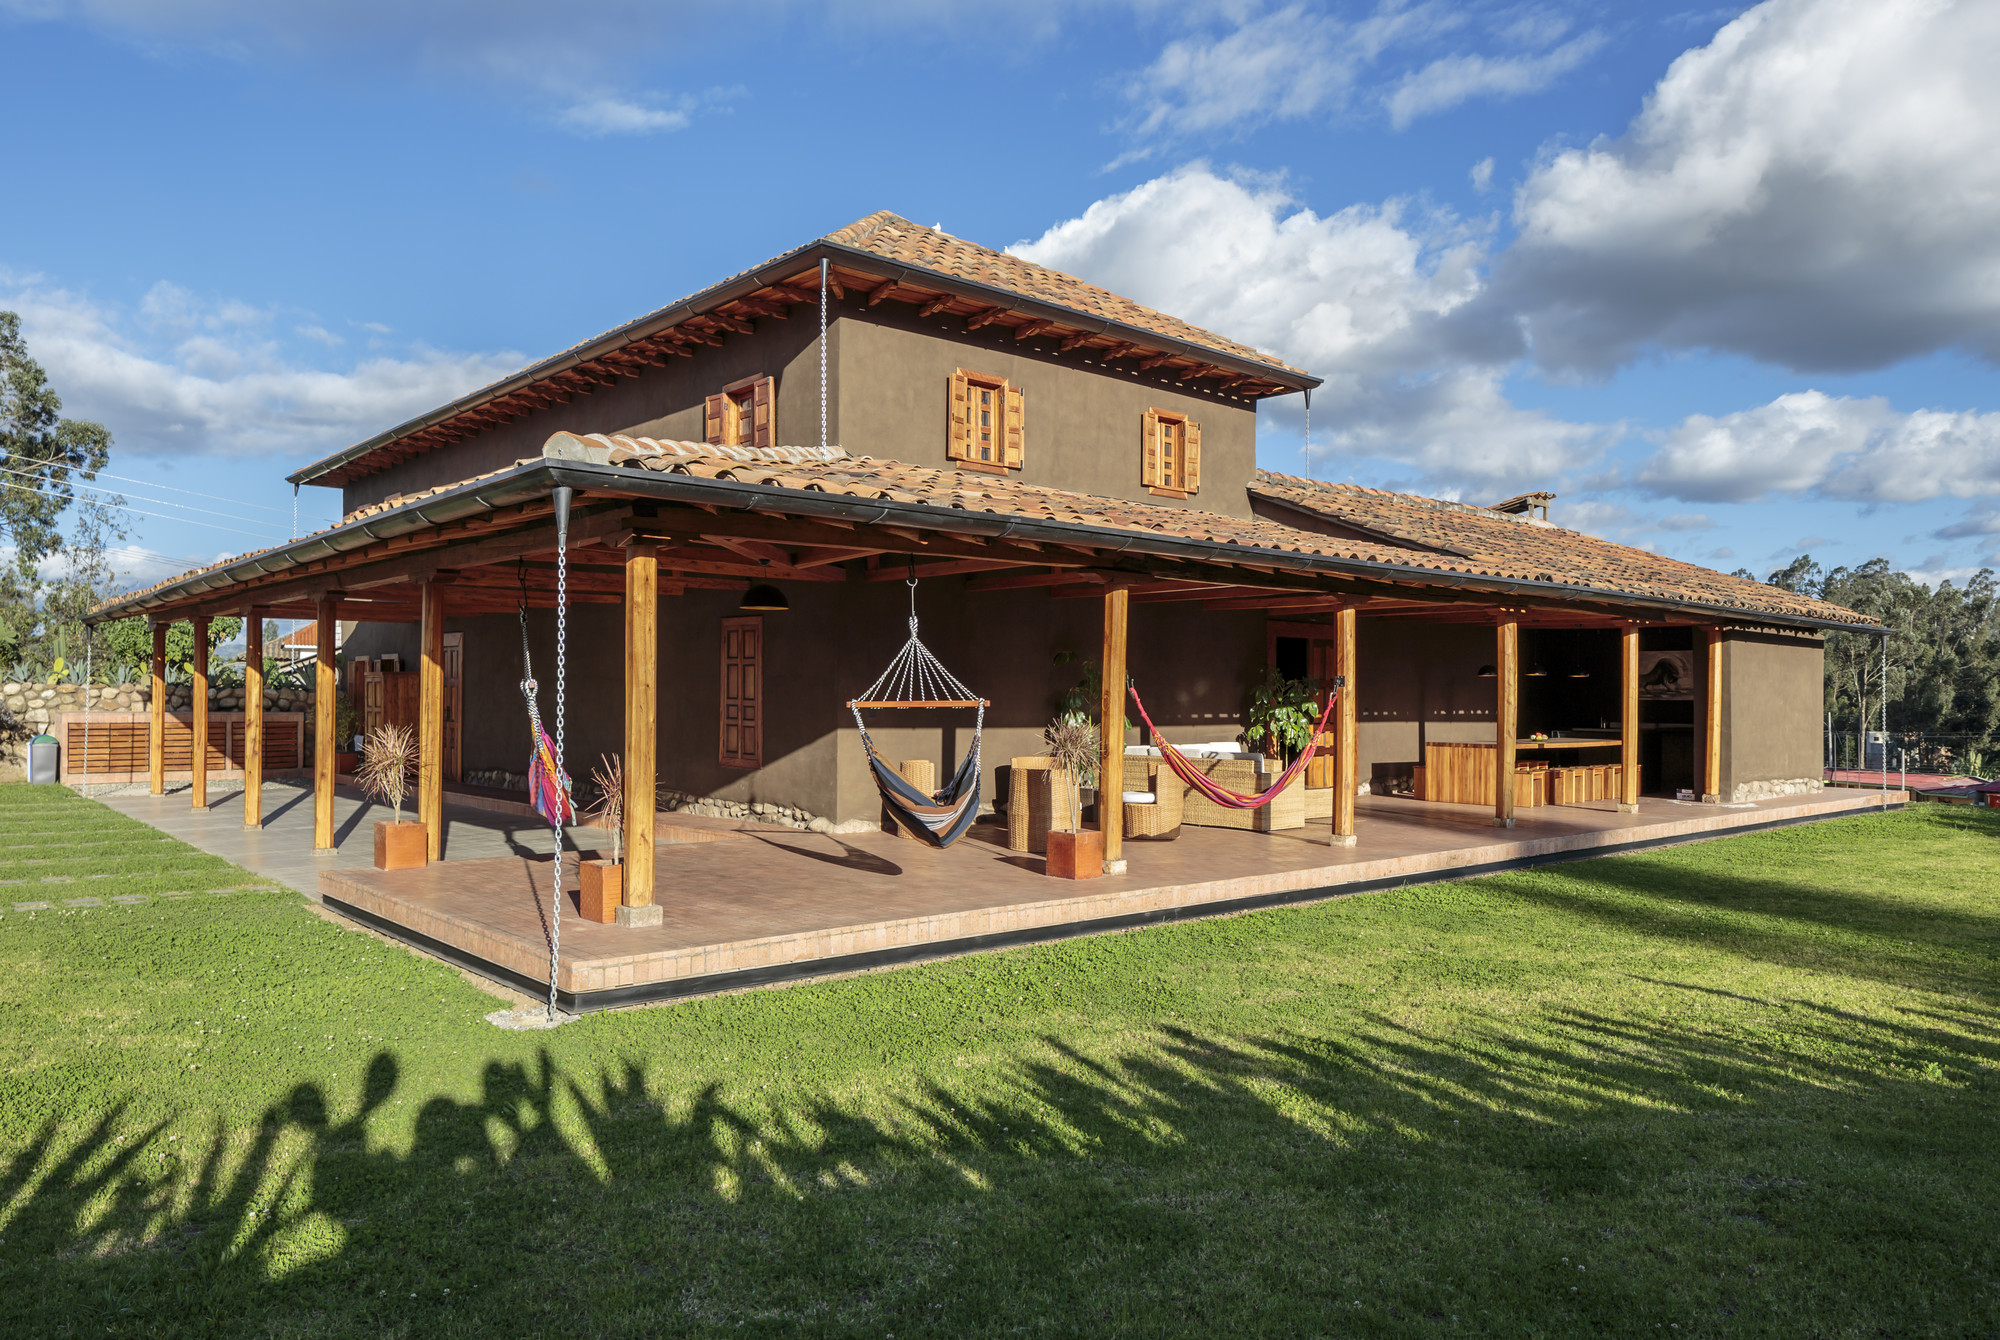 Gallery of loma house iv n andr s quizhpe 9 - Casas de madera balcan house ...